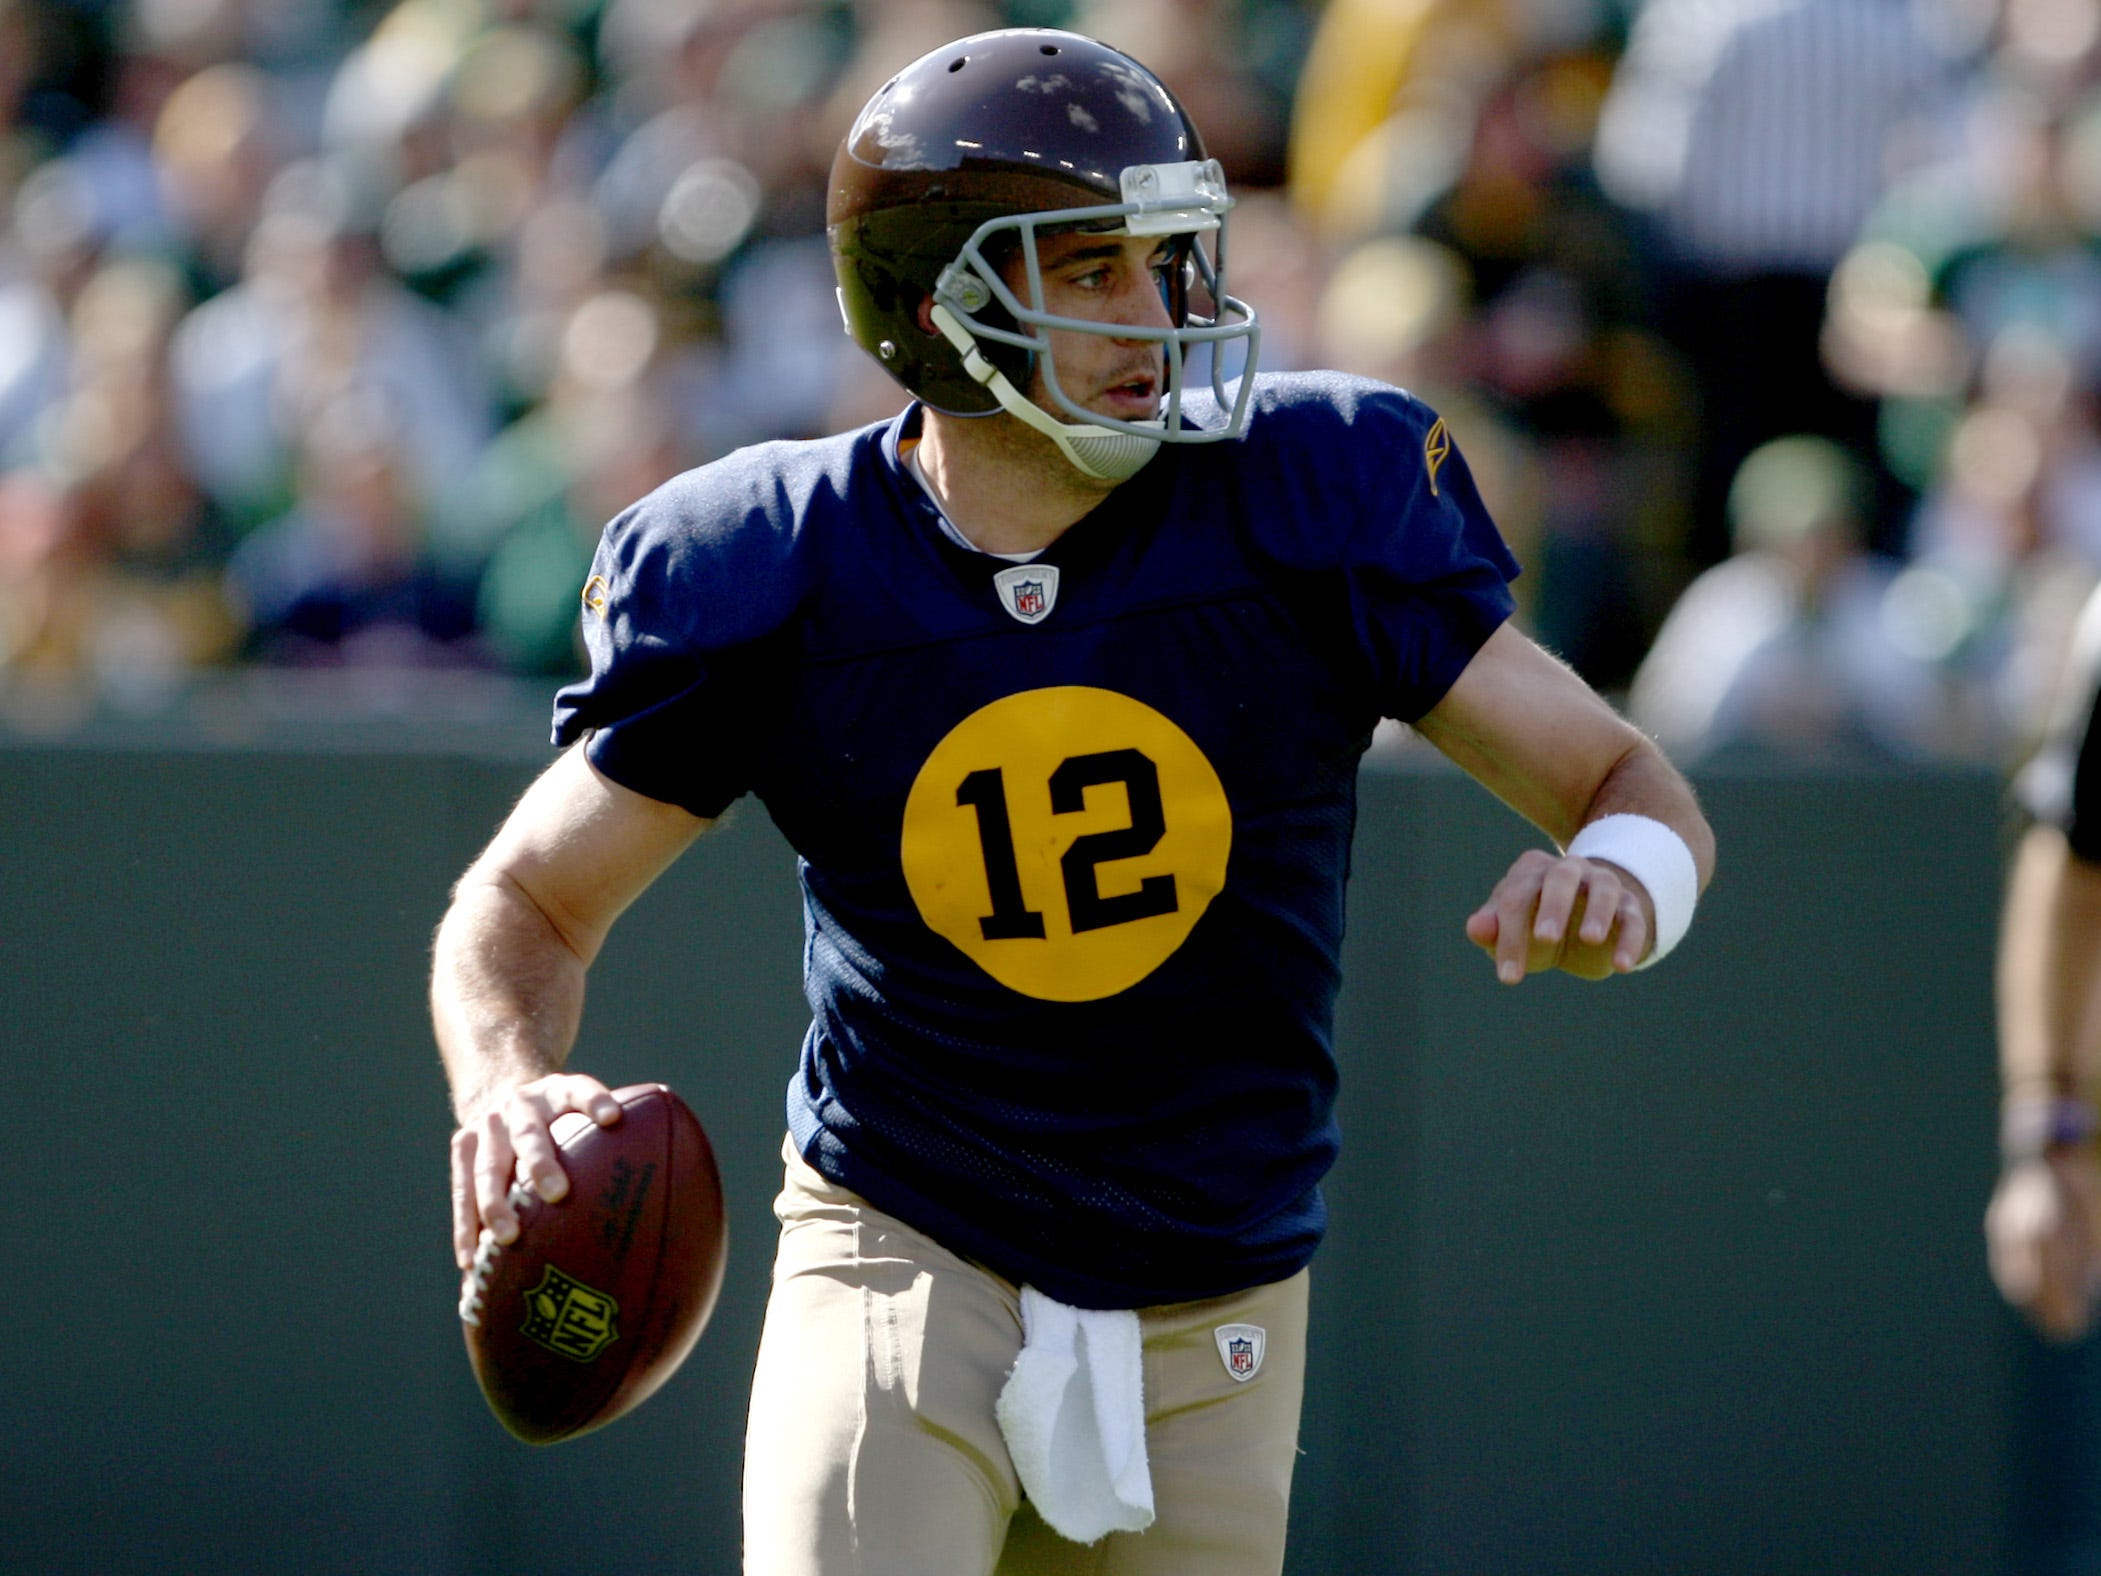 The storied Packers couldn't come up with a better design than having the number in a big circle on the chest? Really?